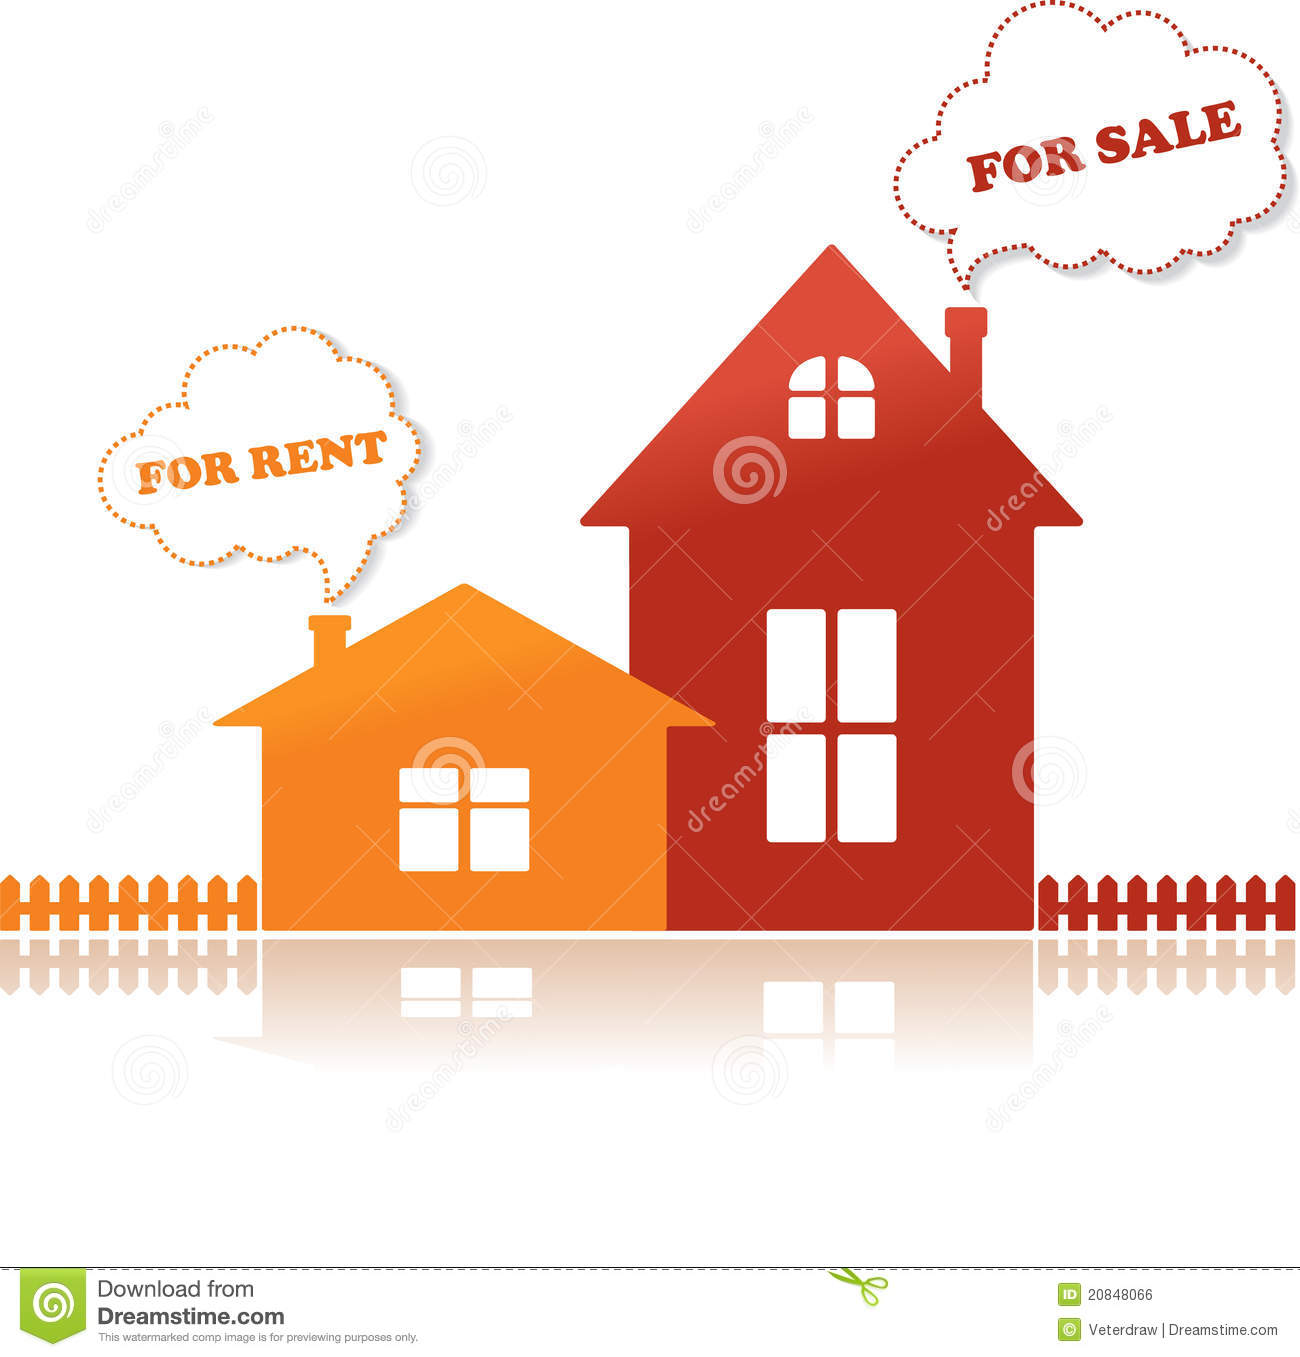 Houses For Sale And For Rent, Vector Illustration Stock